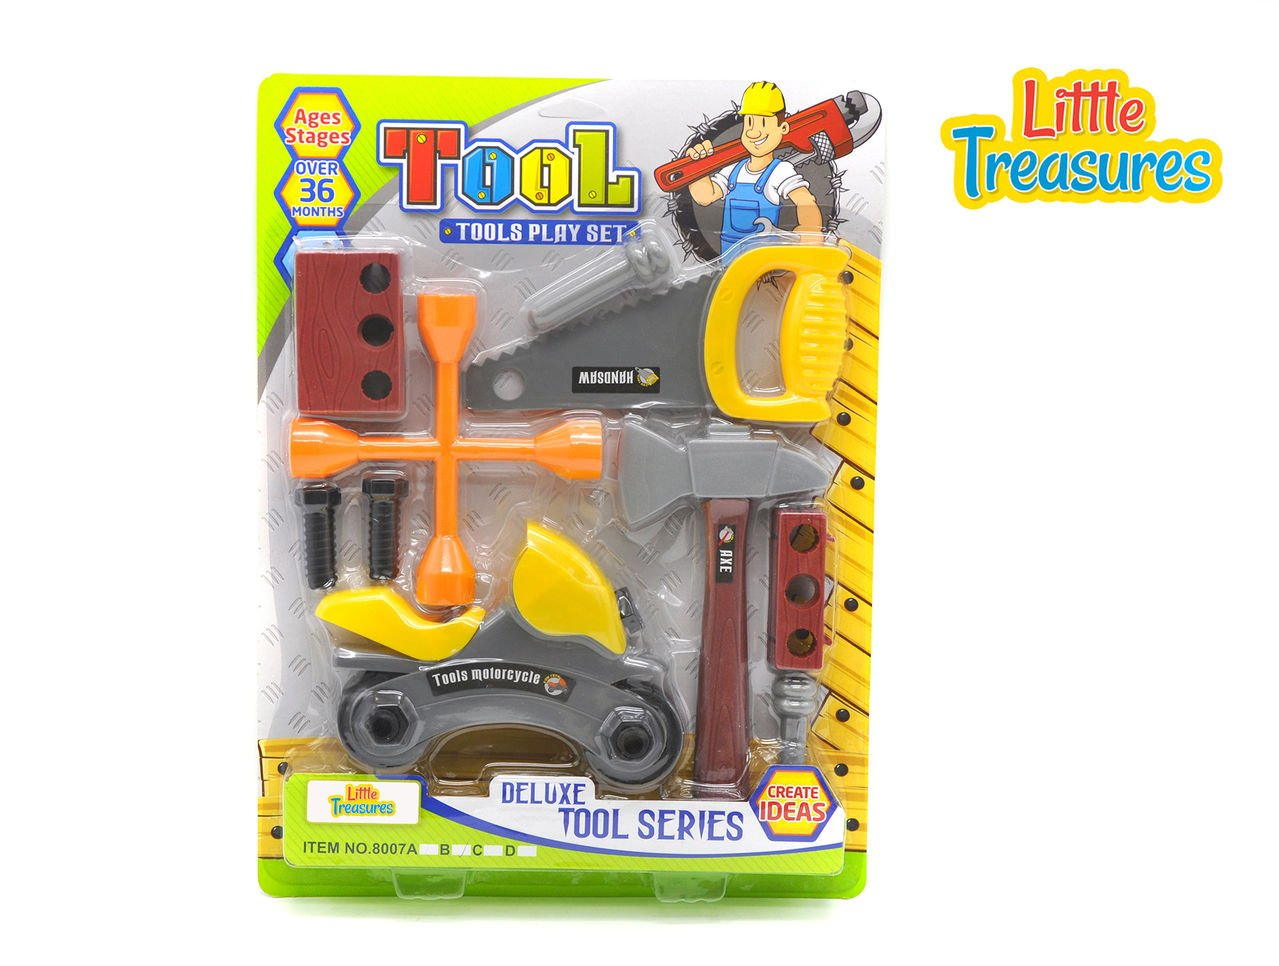 Quality Deluxe Tool series from Little Treasures – Complete with motorcycle, handsaw, axe, Wrench, and lug wrench, screws, and Wooden piece –play set for children over 36 months.